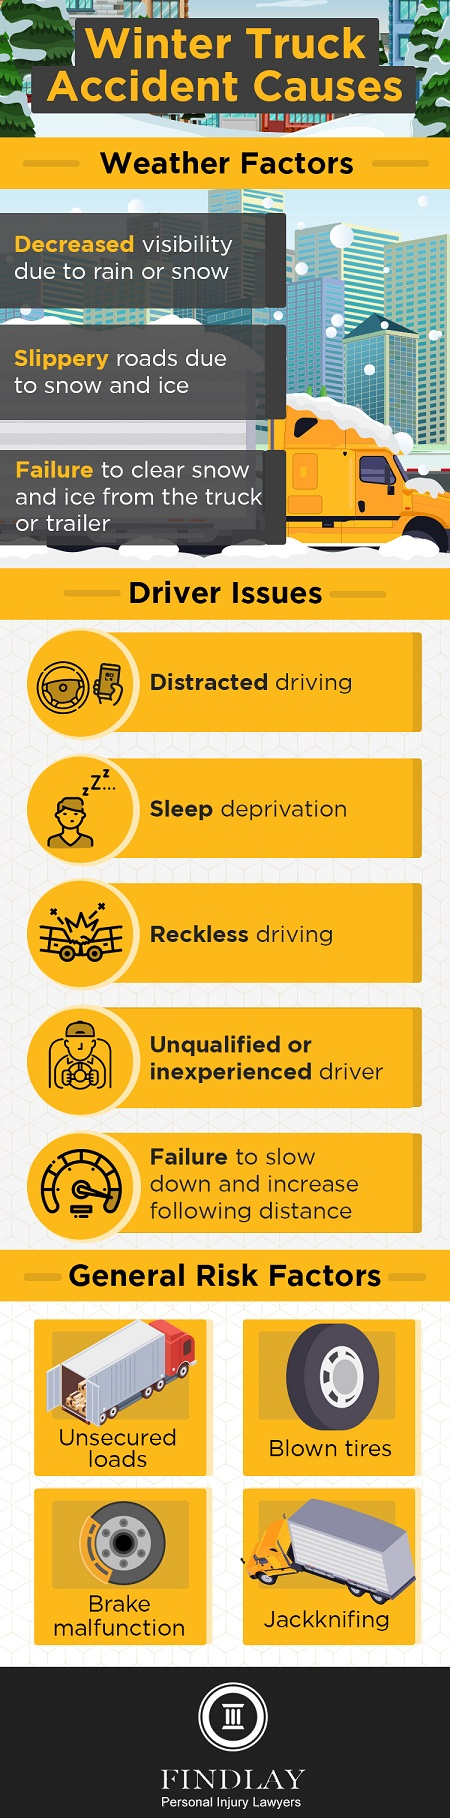 Winter Truck Accident Causes Infographic